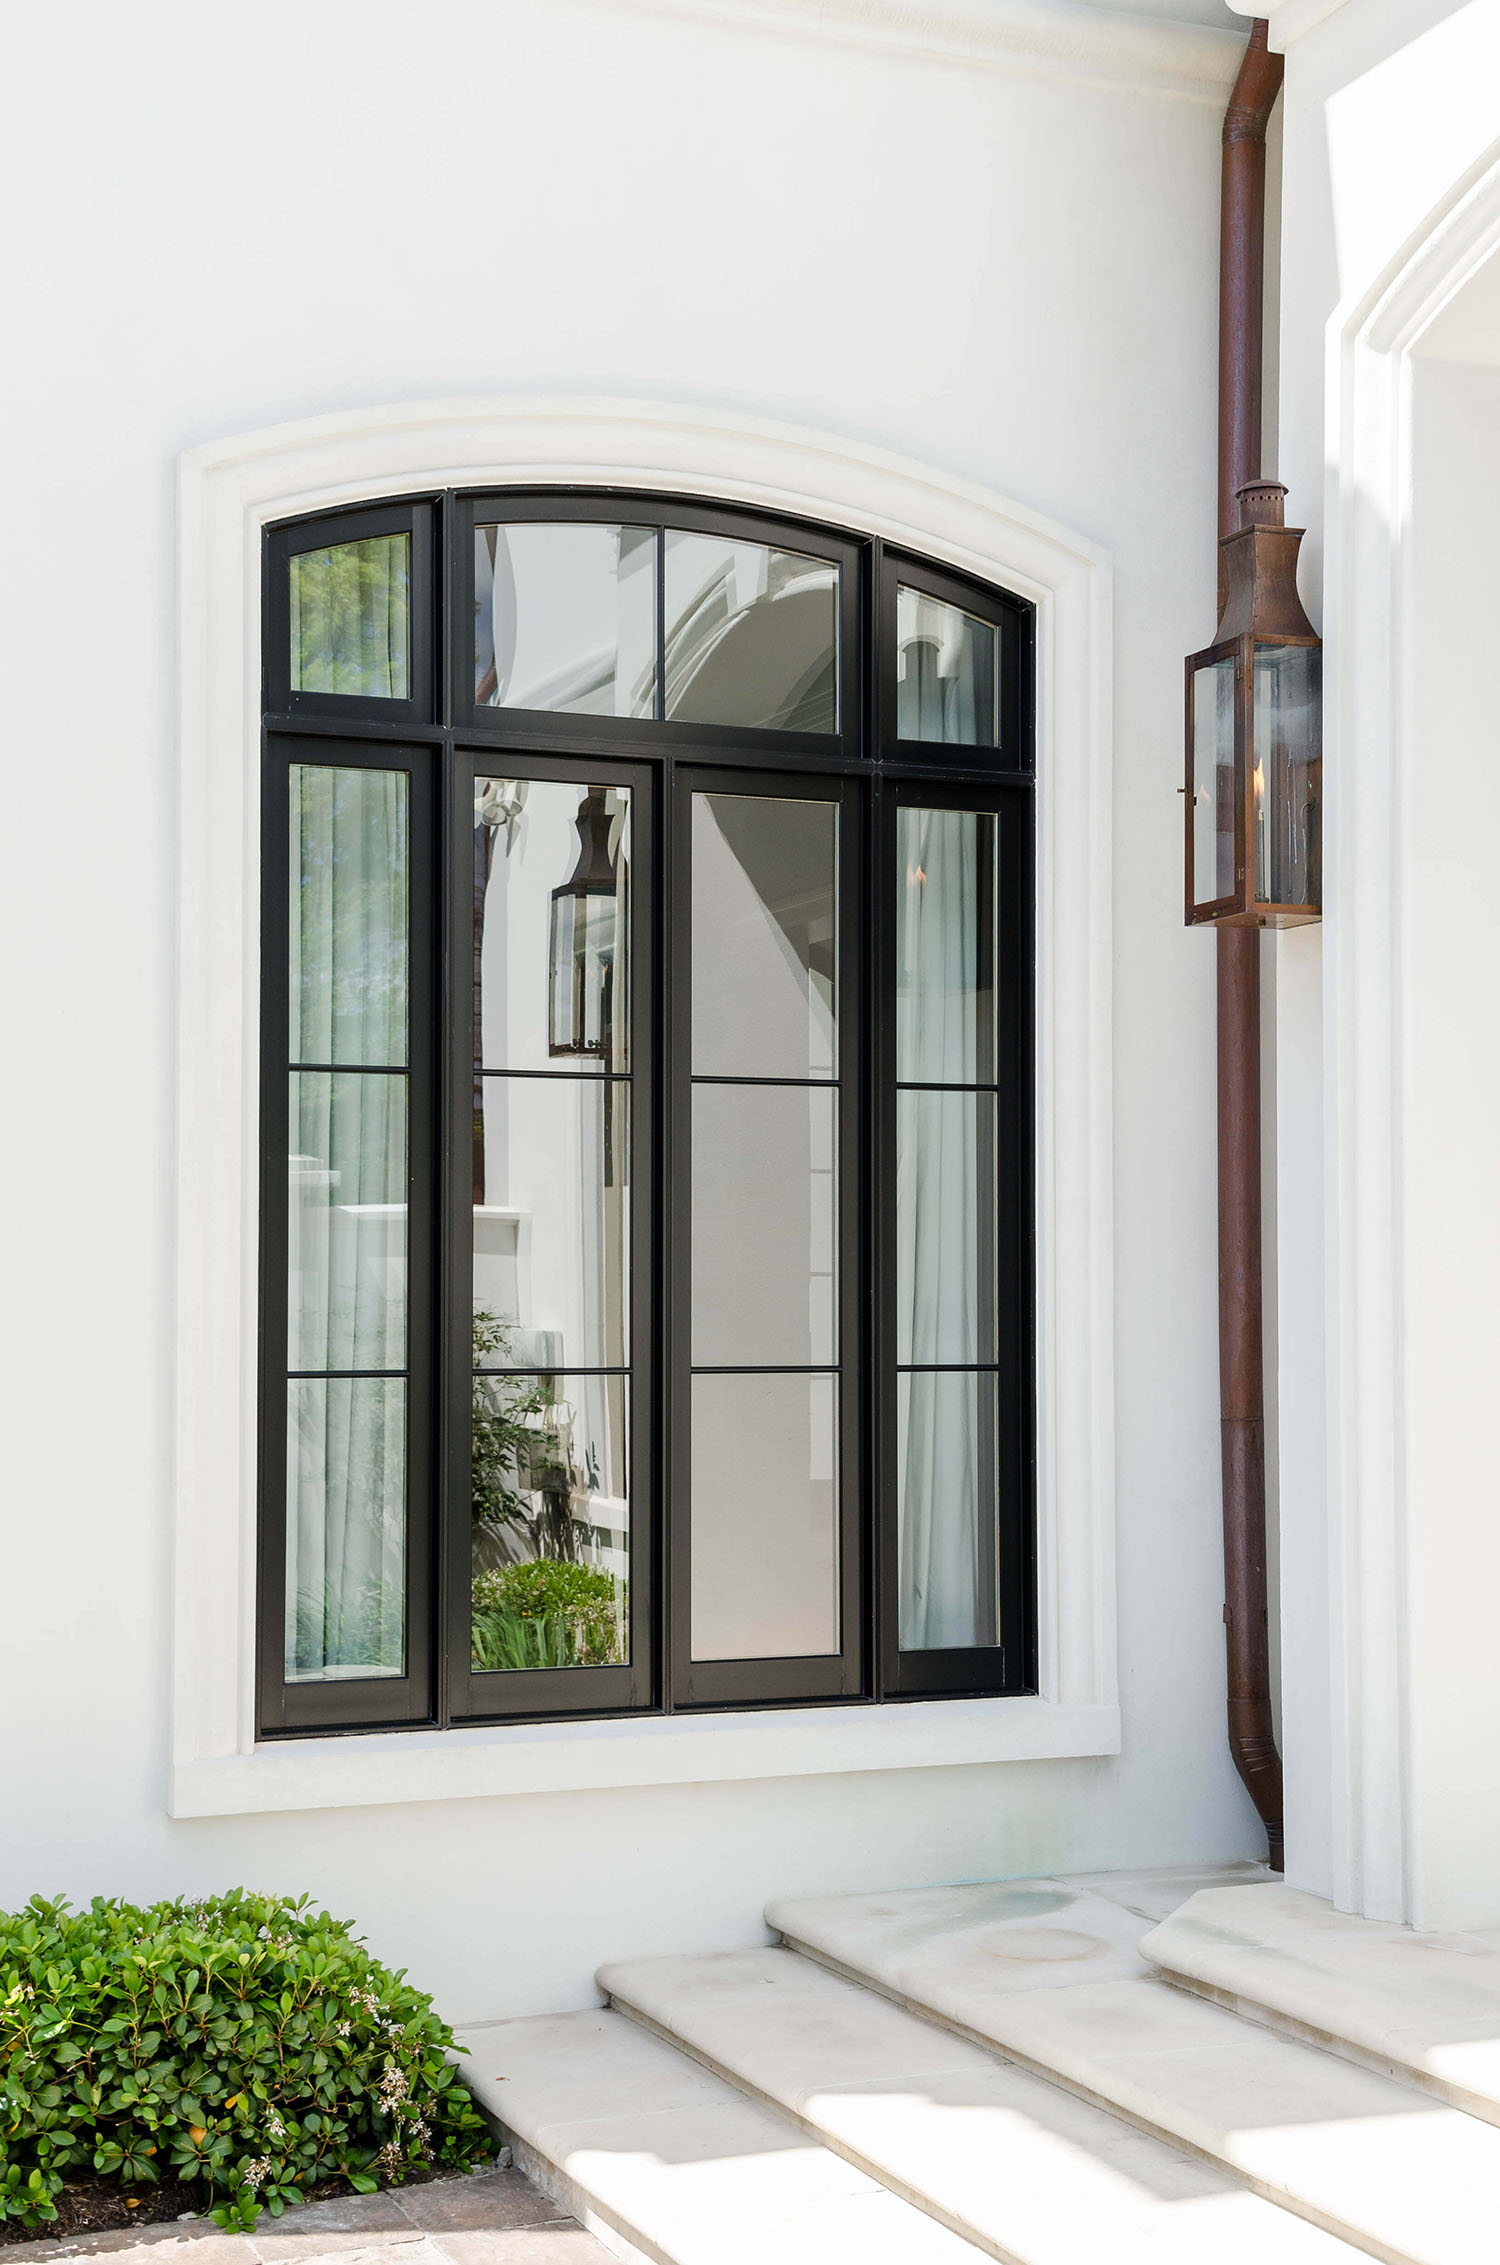 Windows vinyl aluminum wood clad windows jefferson door - Window design for home ...